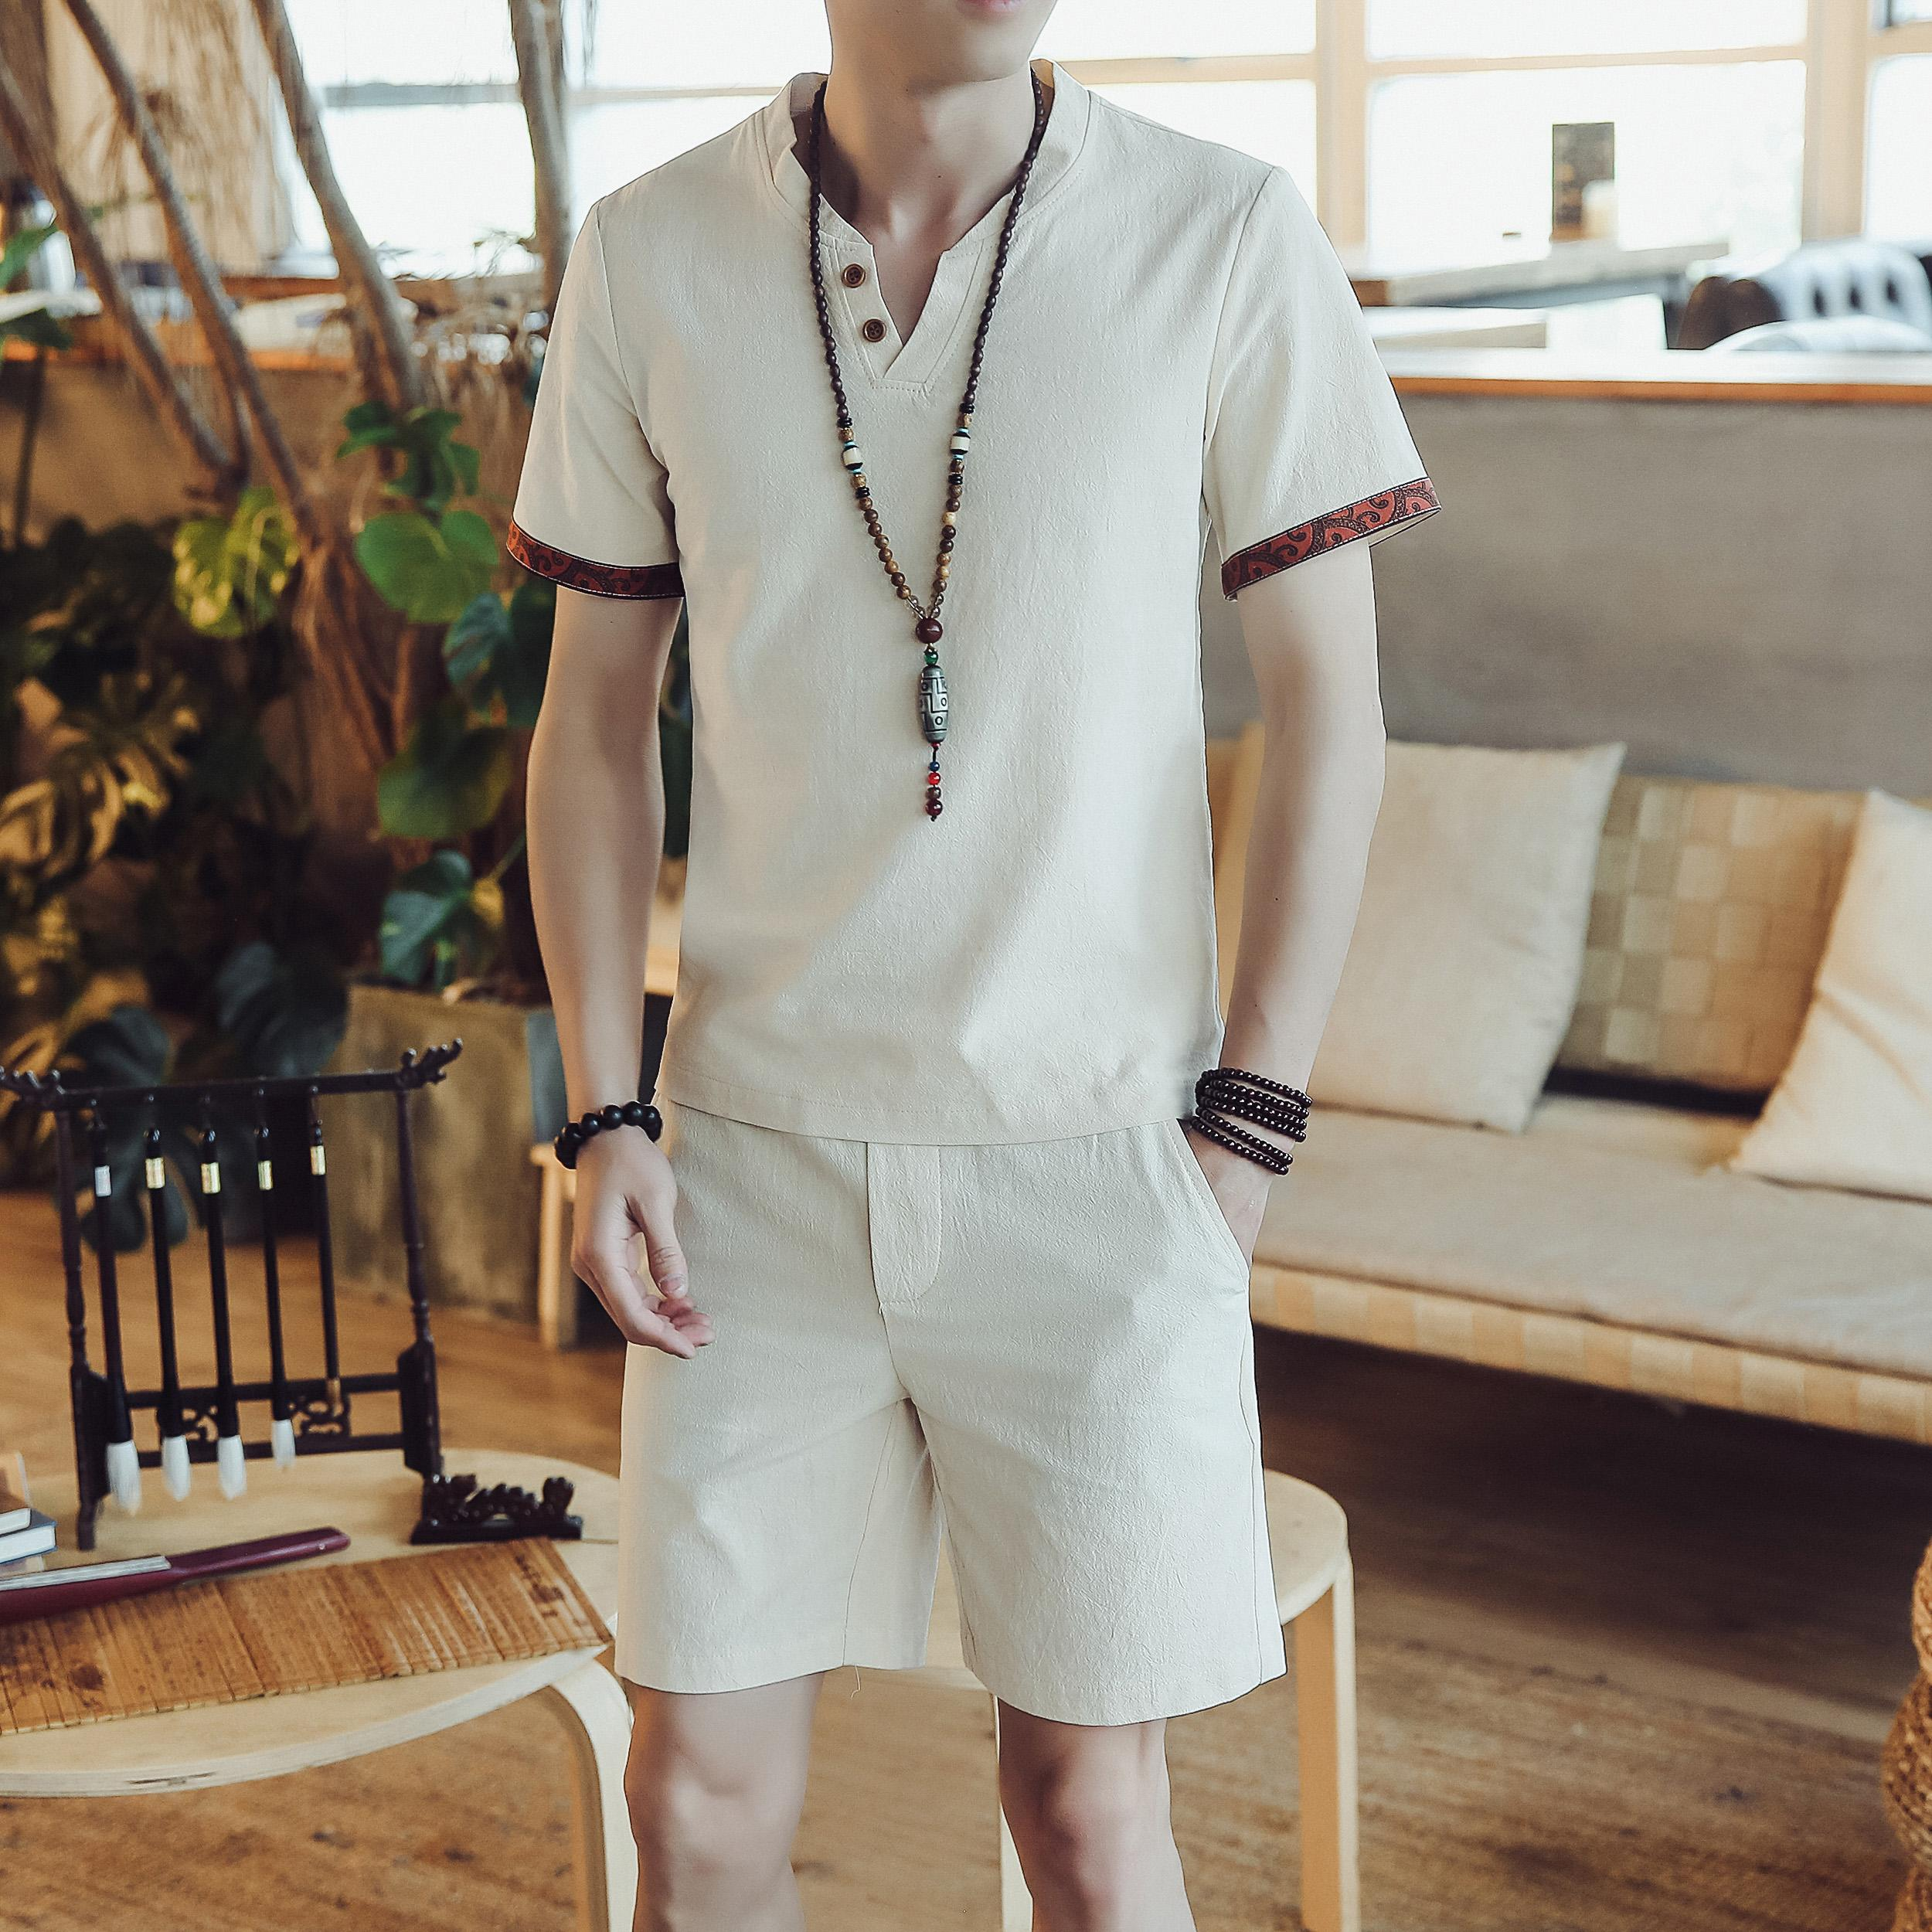 Loldeal Summer Casual Chinese Style Plain Short-sleeved T-shirt Two-piece Shorts Suit